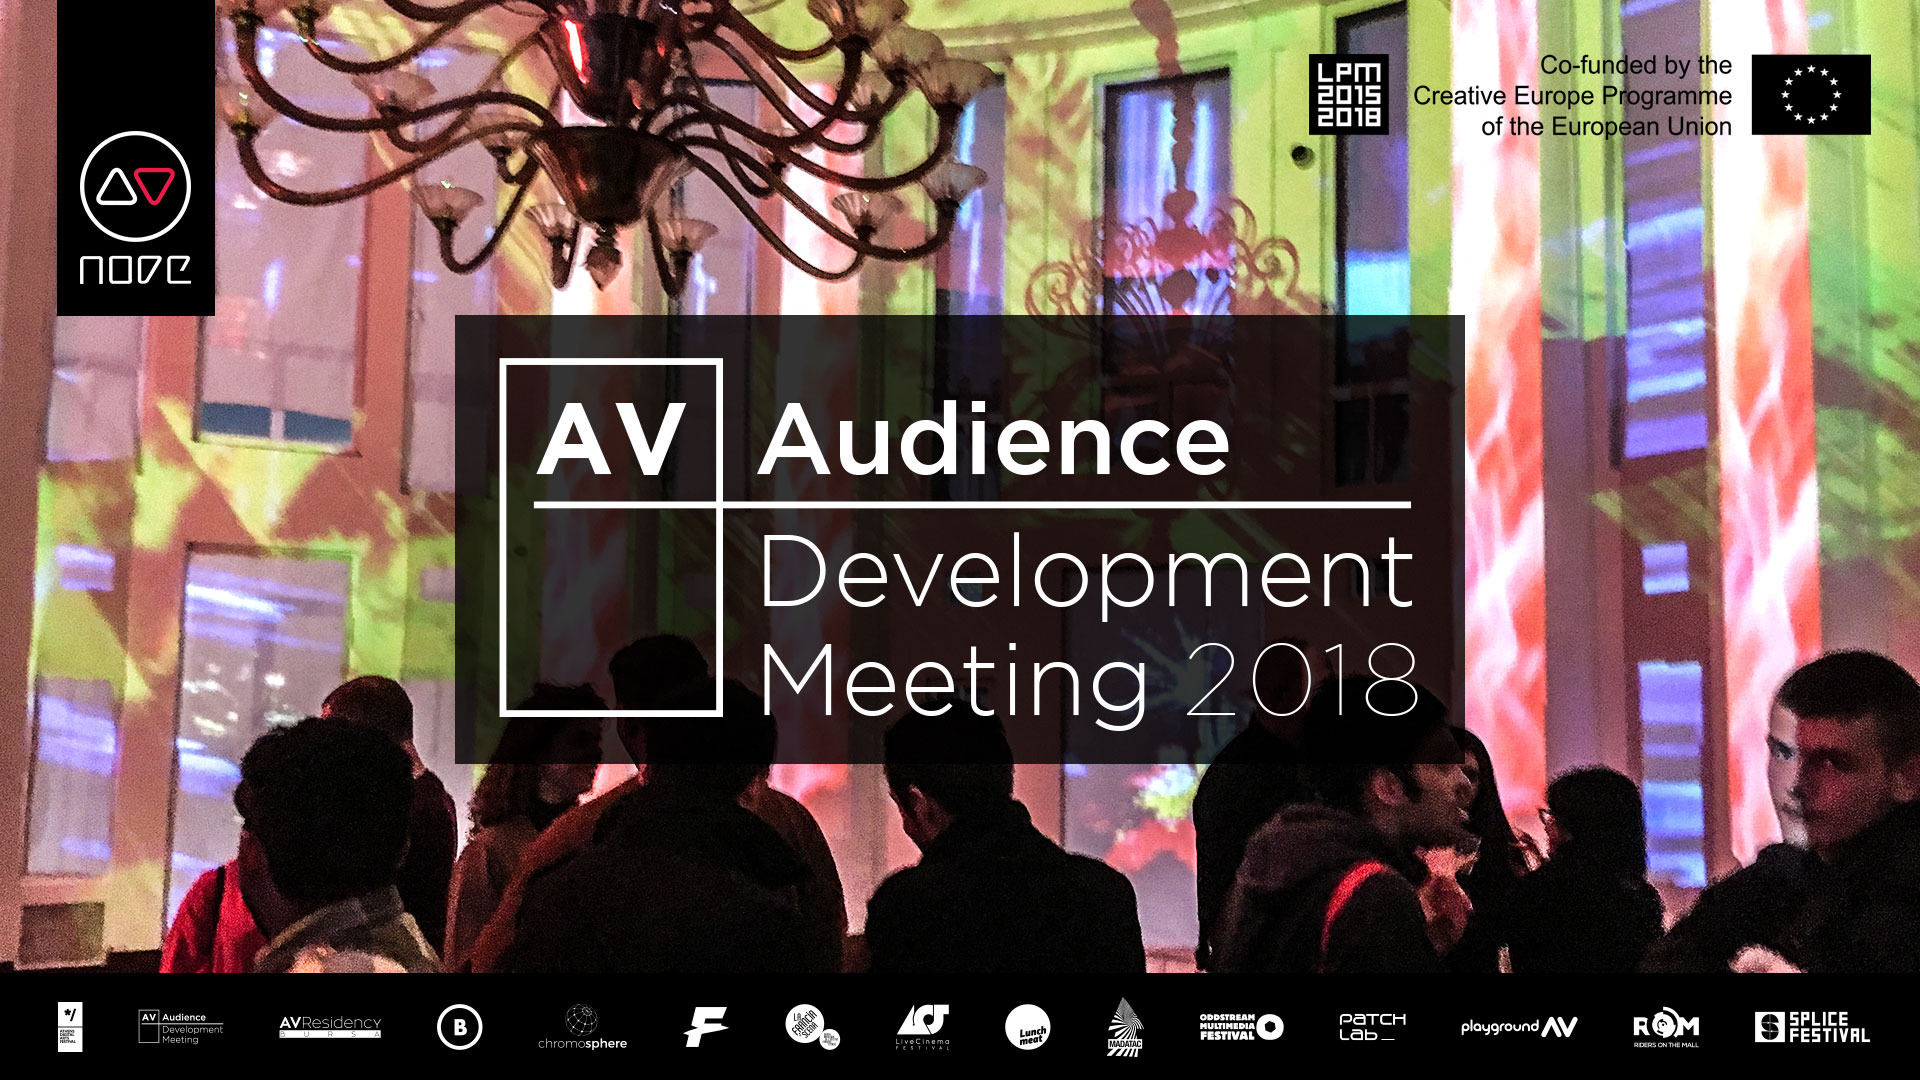 AV Audience Development Meeting 2018 | LPM 2015 > 2018